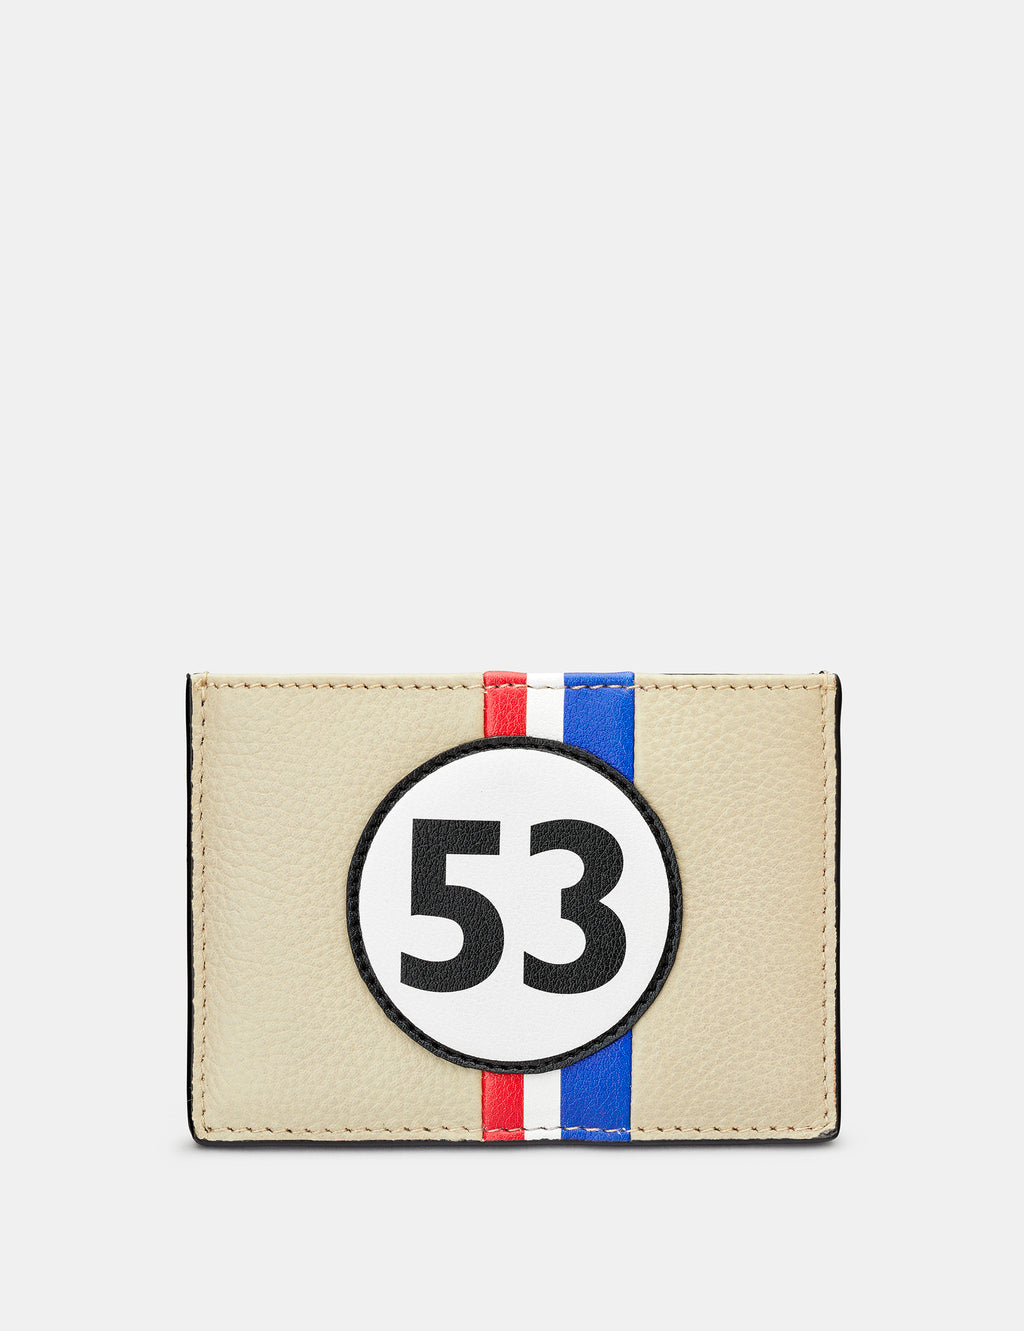 Car Livery No. 53 Black Leather Card Holder